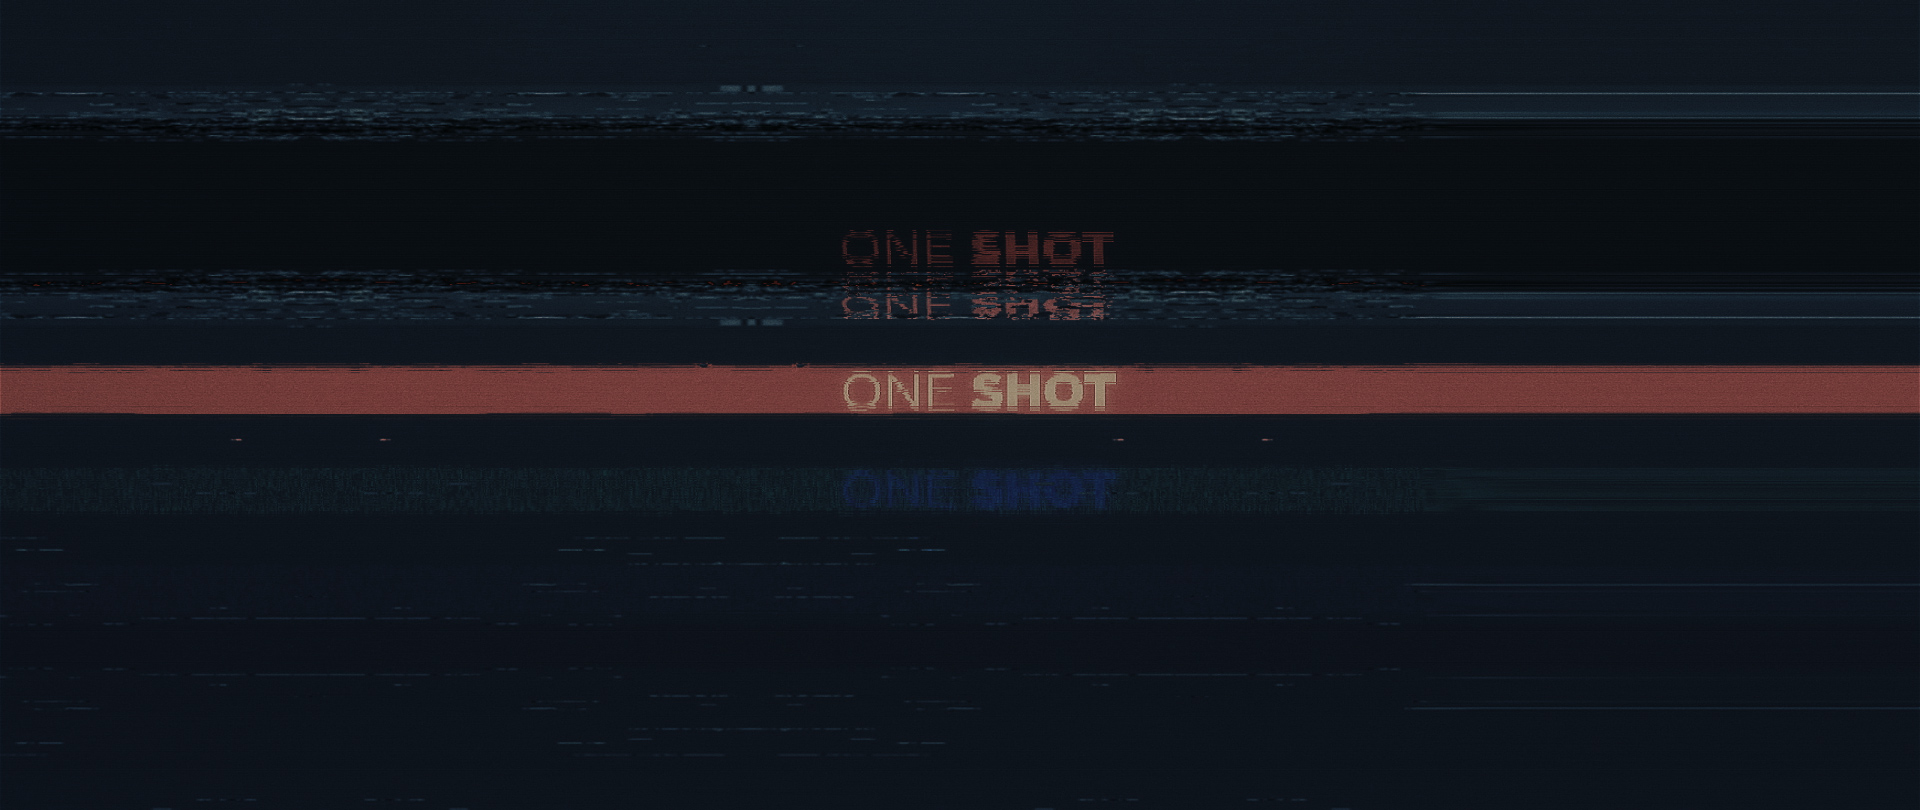 One Shot Main Tiltes 3.jpg